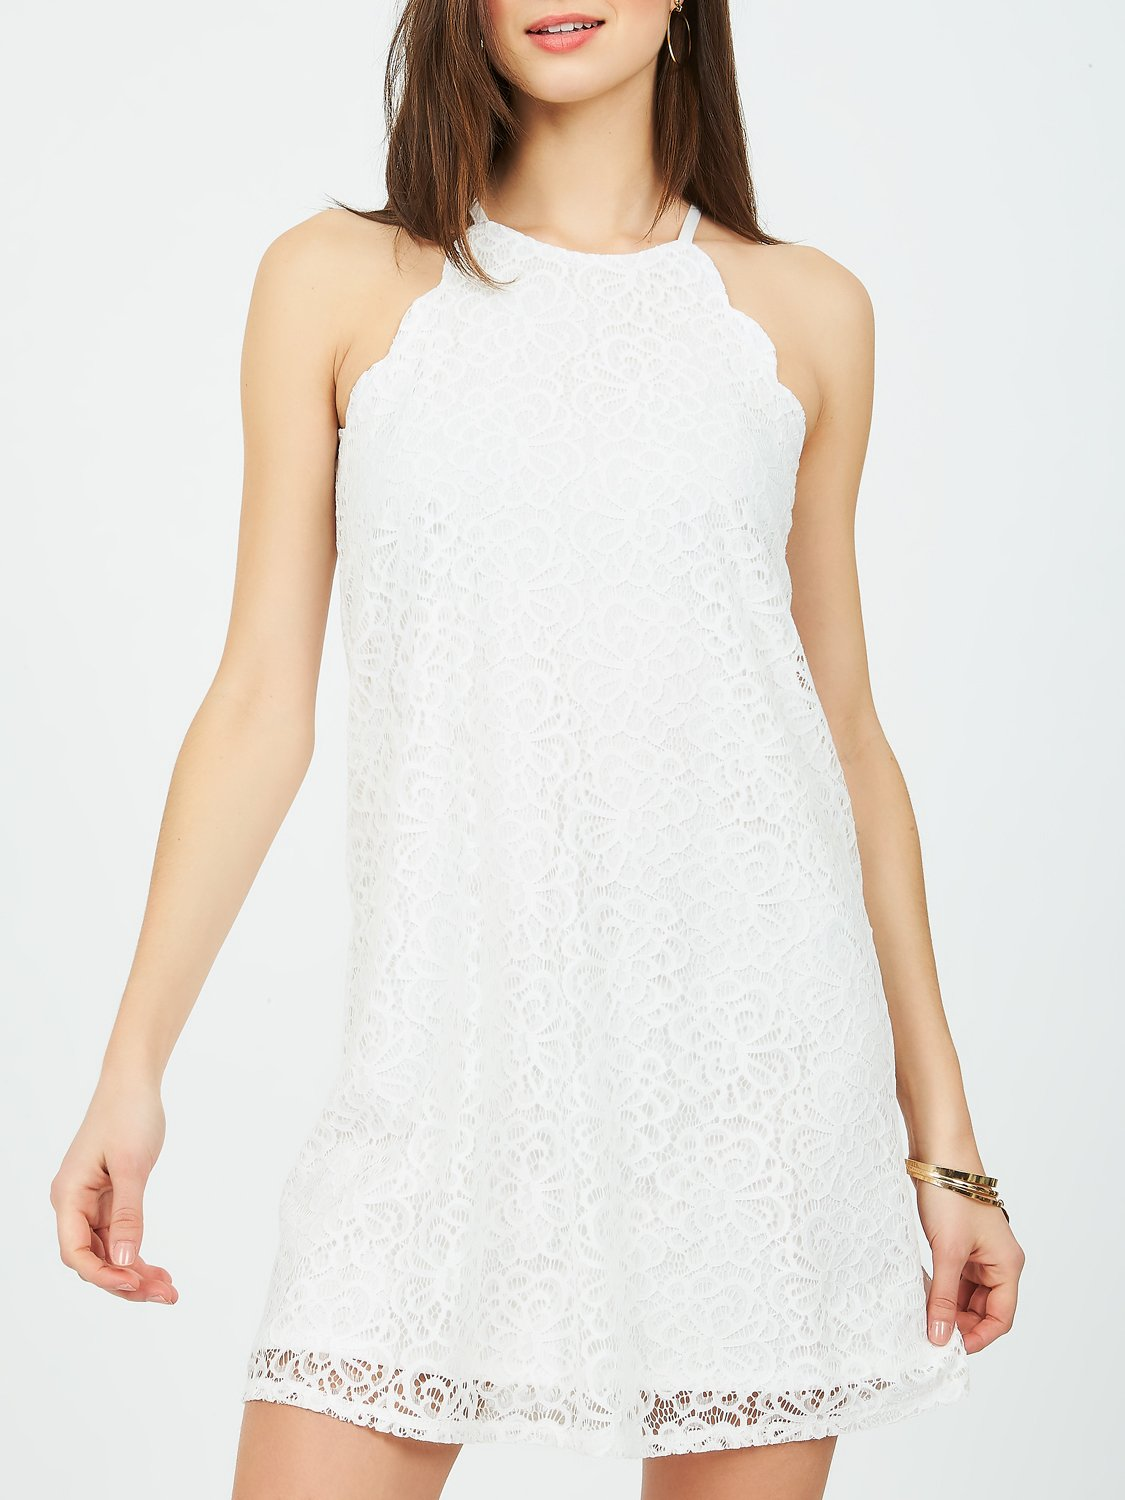 Copy of Scalloped Lace Dress